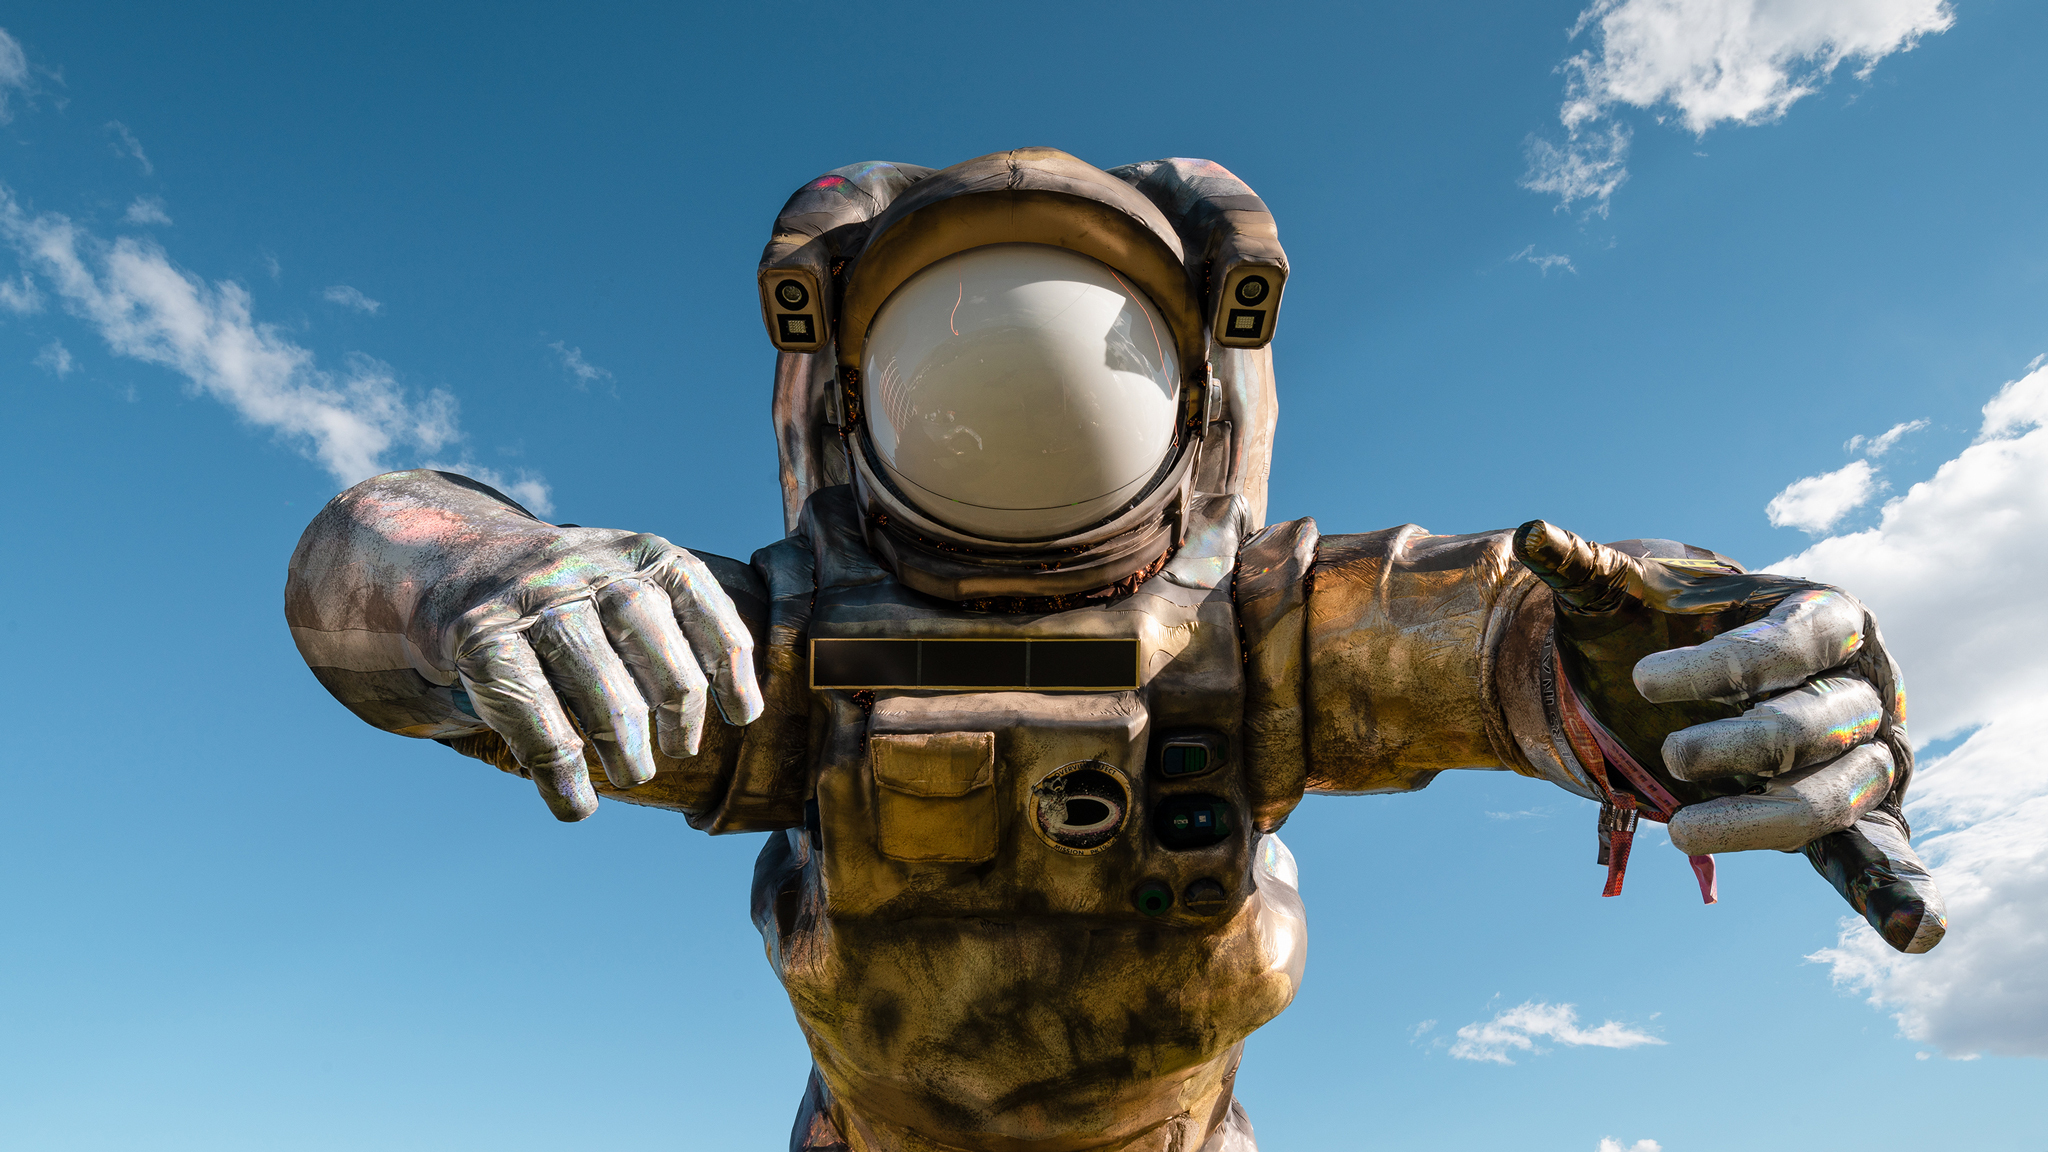 The big astronaut is back to hover over Coachella—and it's looking a little burnt out